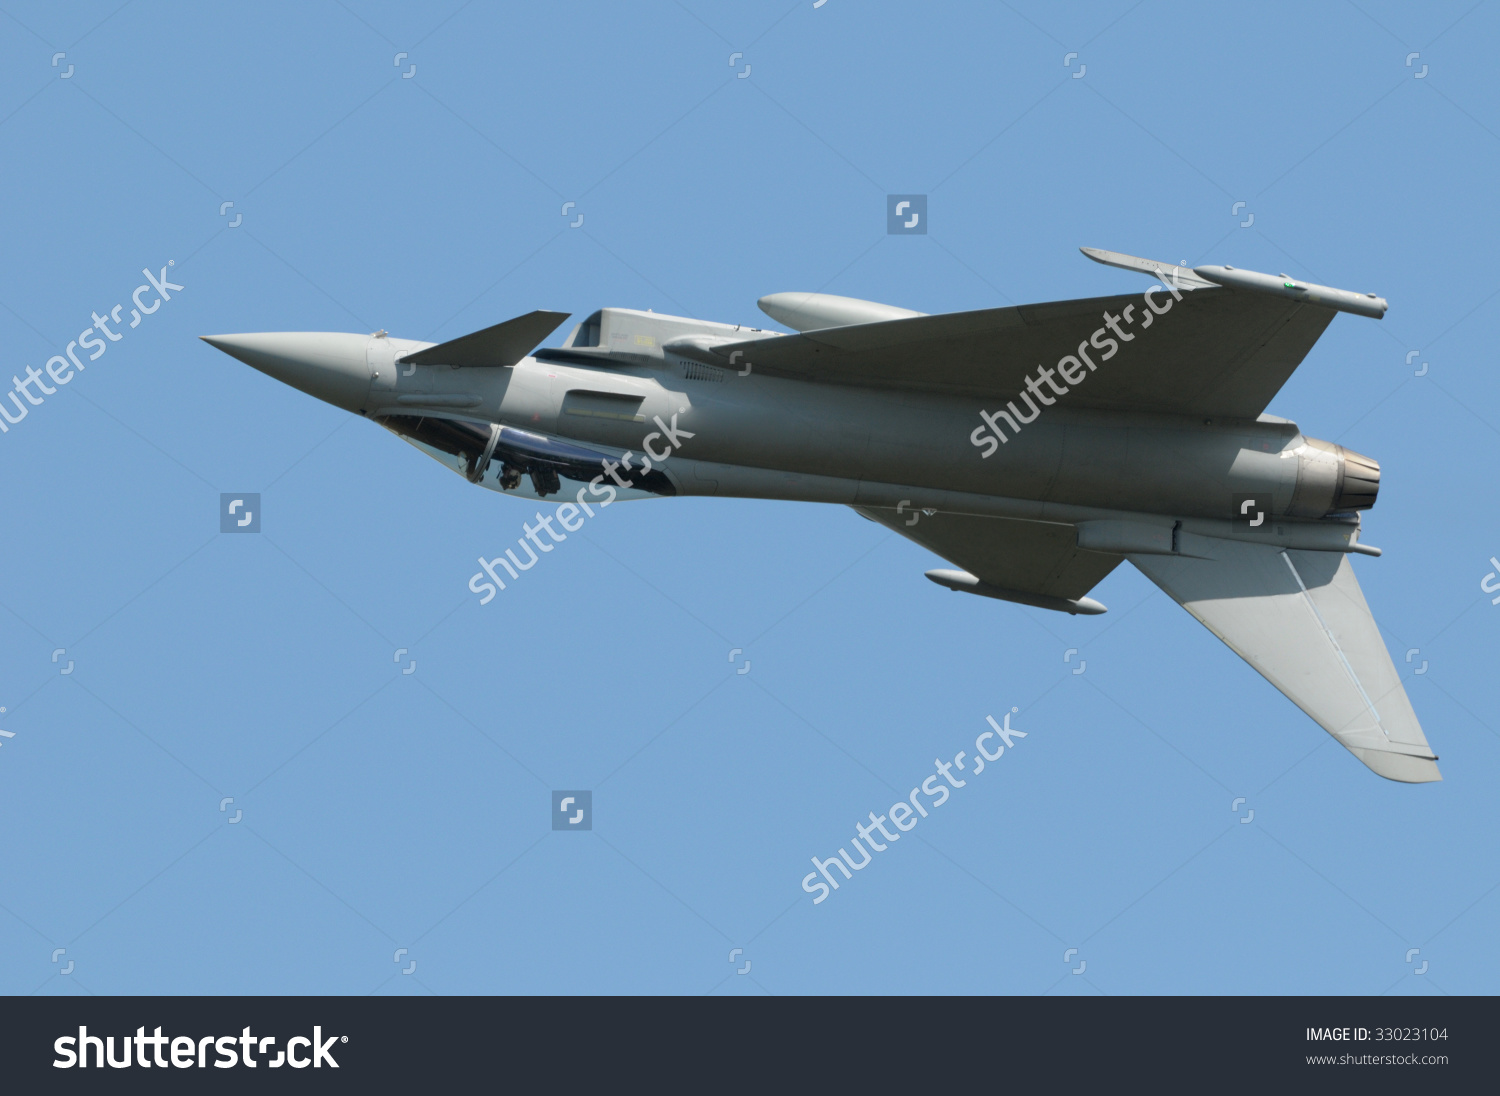 Eurofighter (Typhoon) Jet Stock Photo 33023104 : Shutterstock.